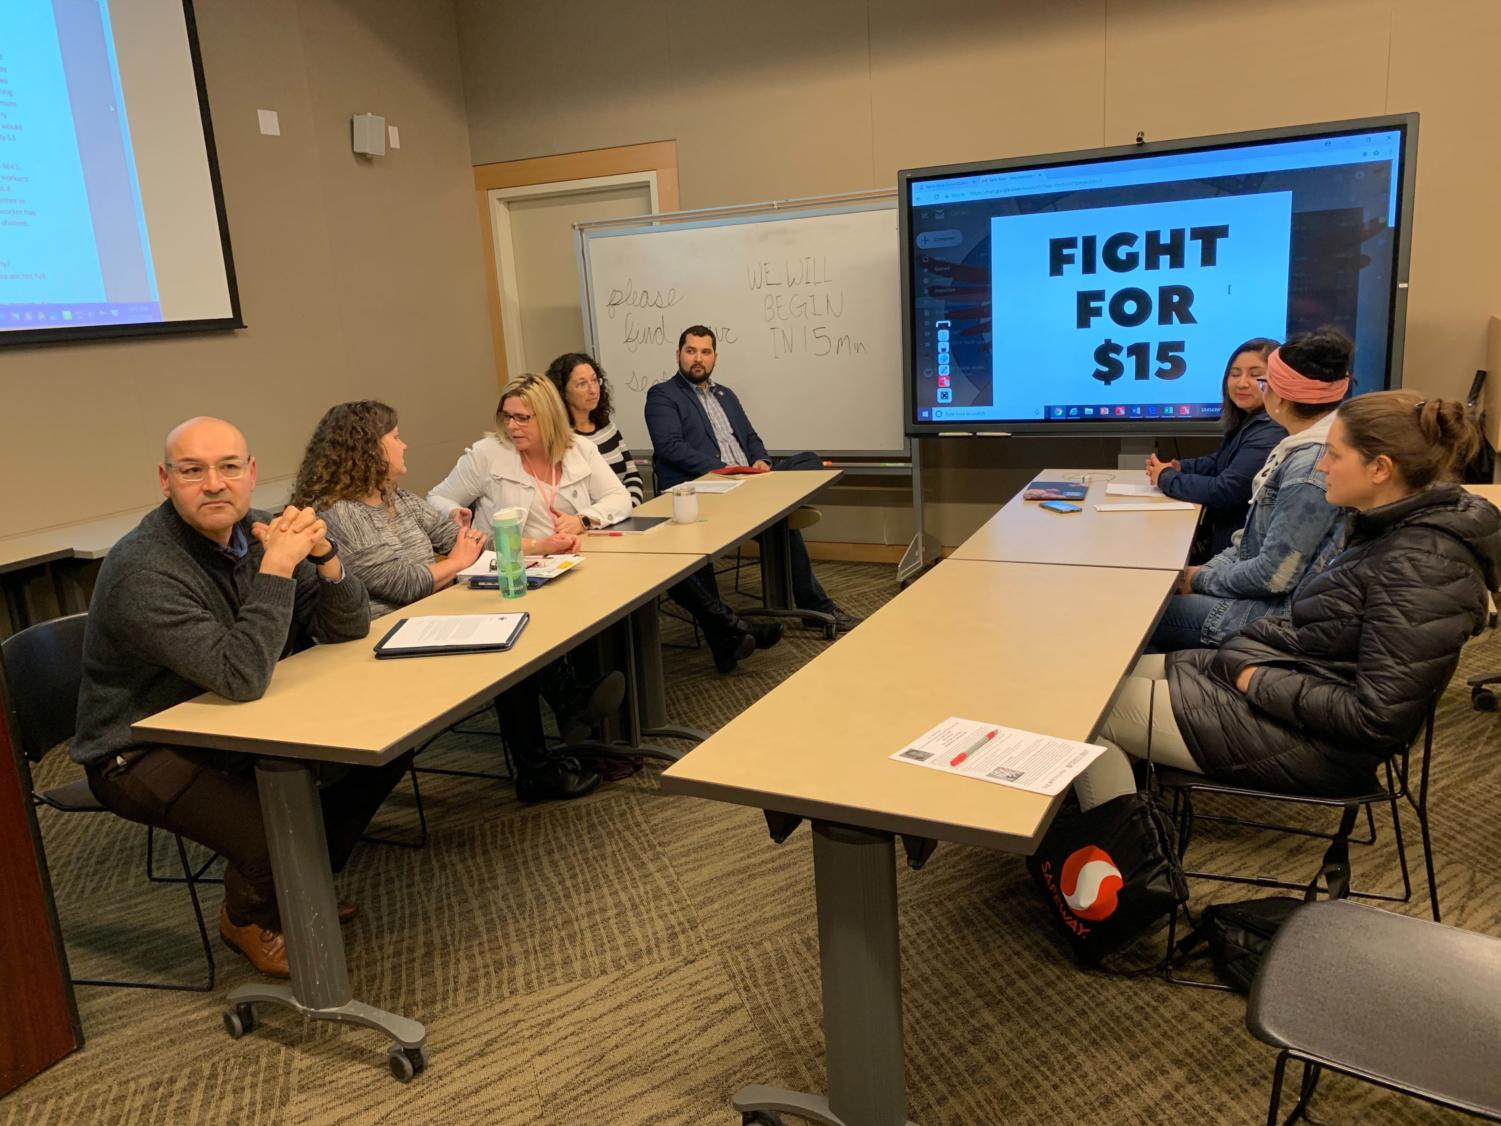 SRJC officials answer on-going questions from MEChA. Seated left-to-right: Pedro Avilla, assistant superintendent and vice president of student services; Kate Jolley, interim vice president of finance and administrative services; Rachael Cutcher, manager of student financial services; Jana Cox, director of student financial services; Jordan Burns, president of the board of trustees.